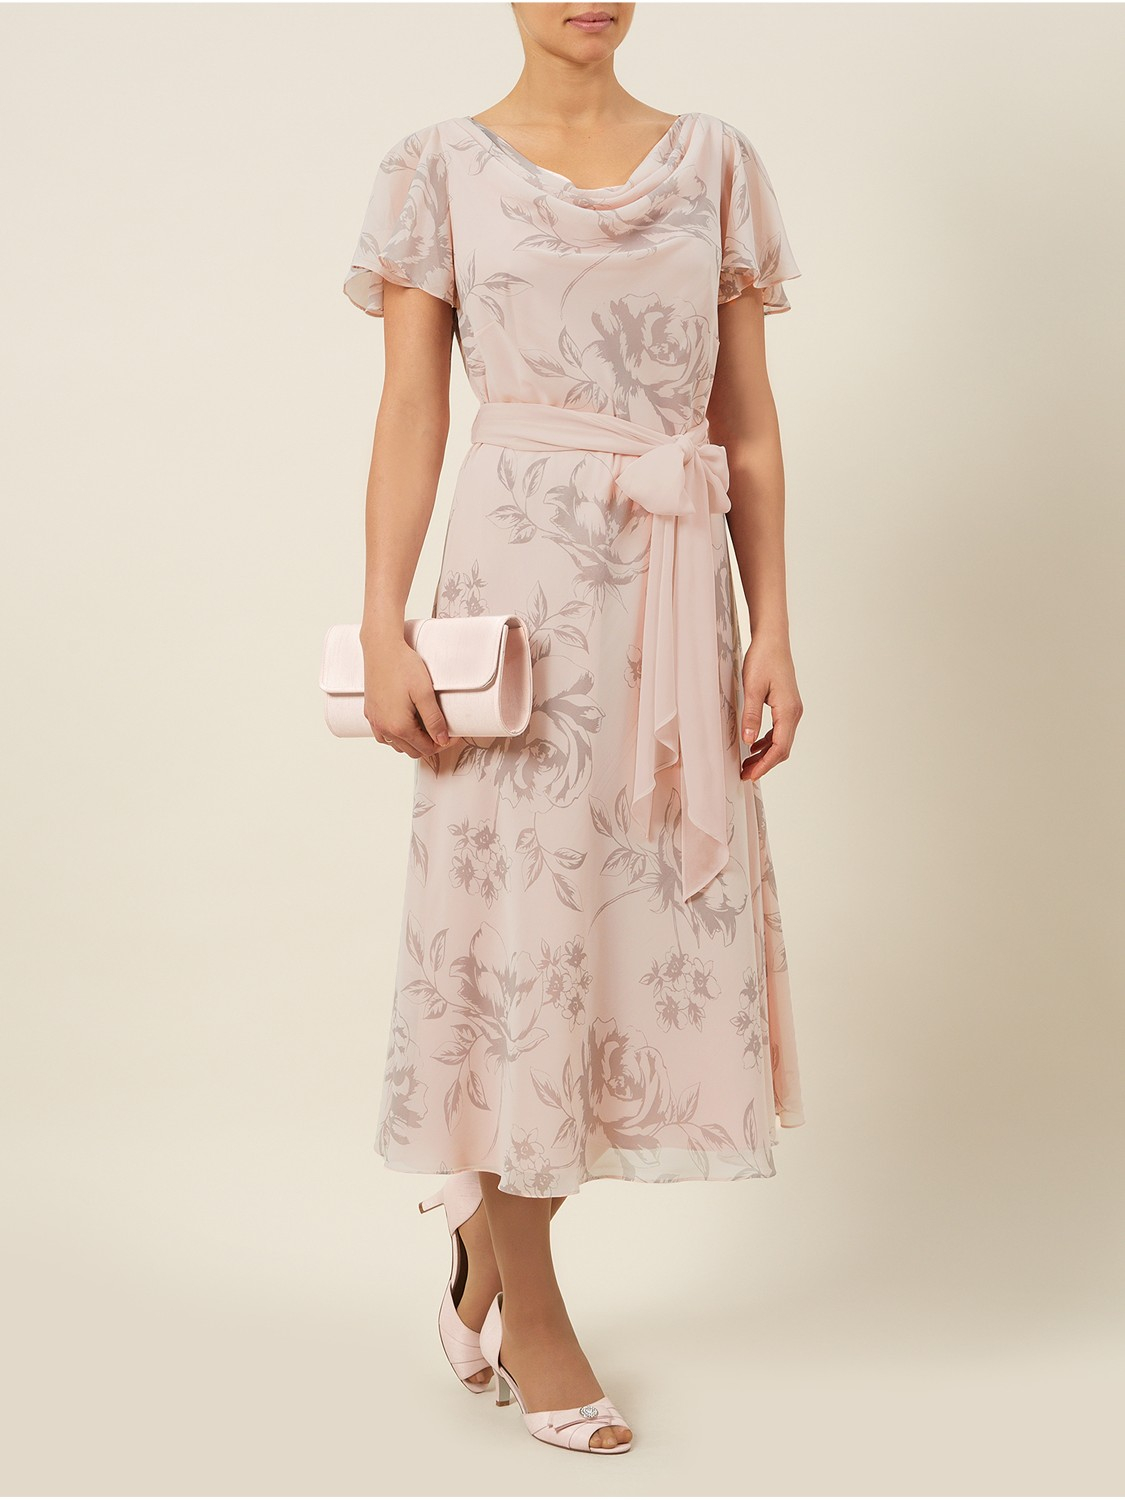 Jacques Vert Rose Print Fit And Flare Dress Lyst